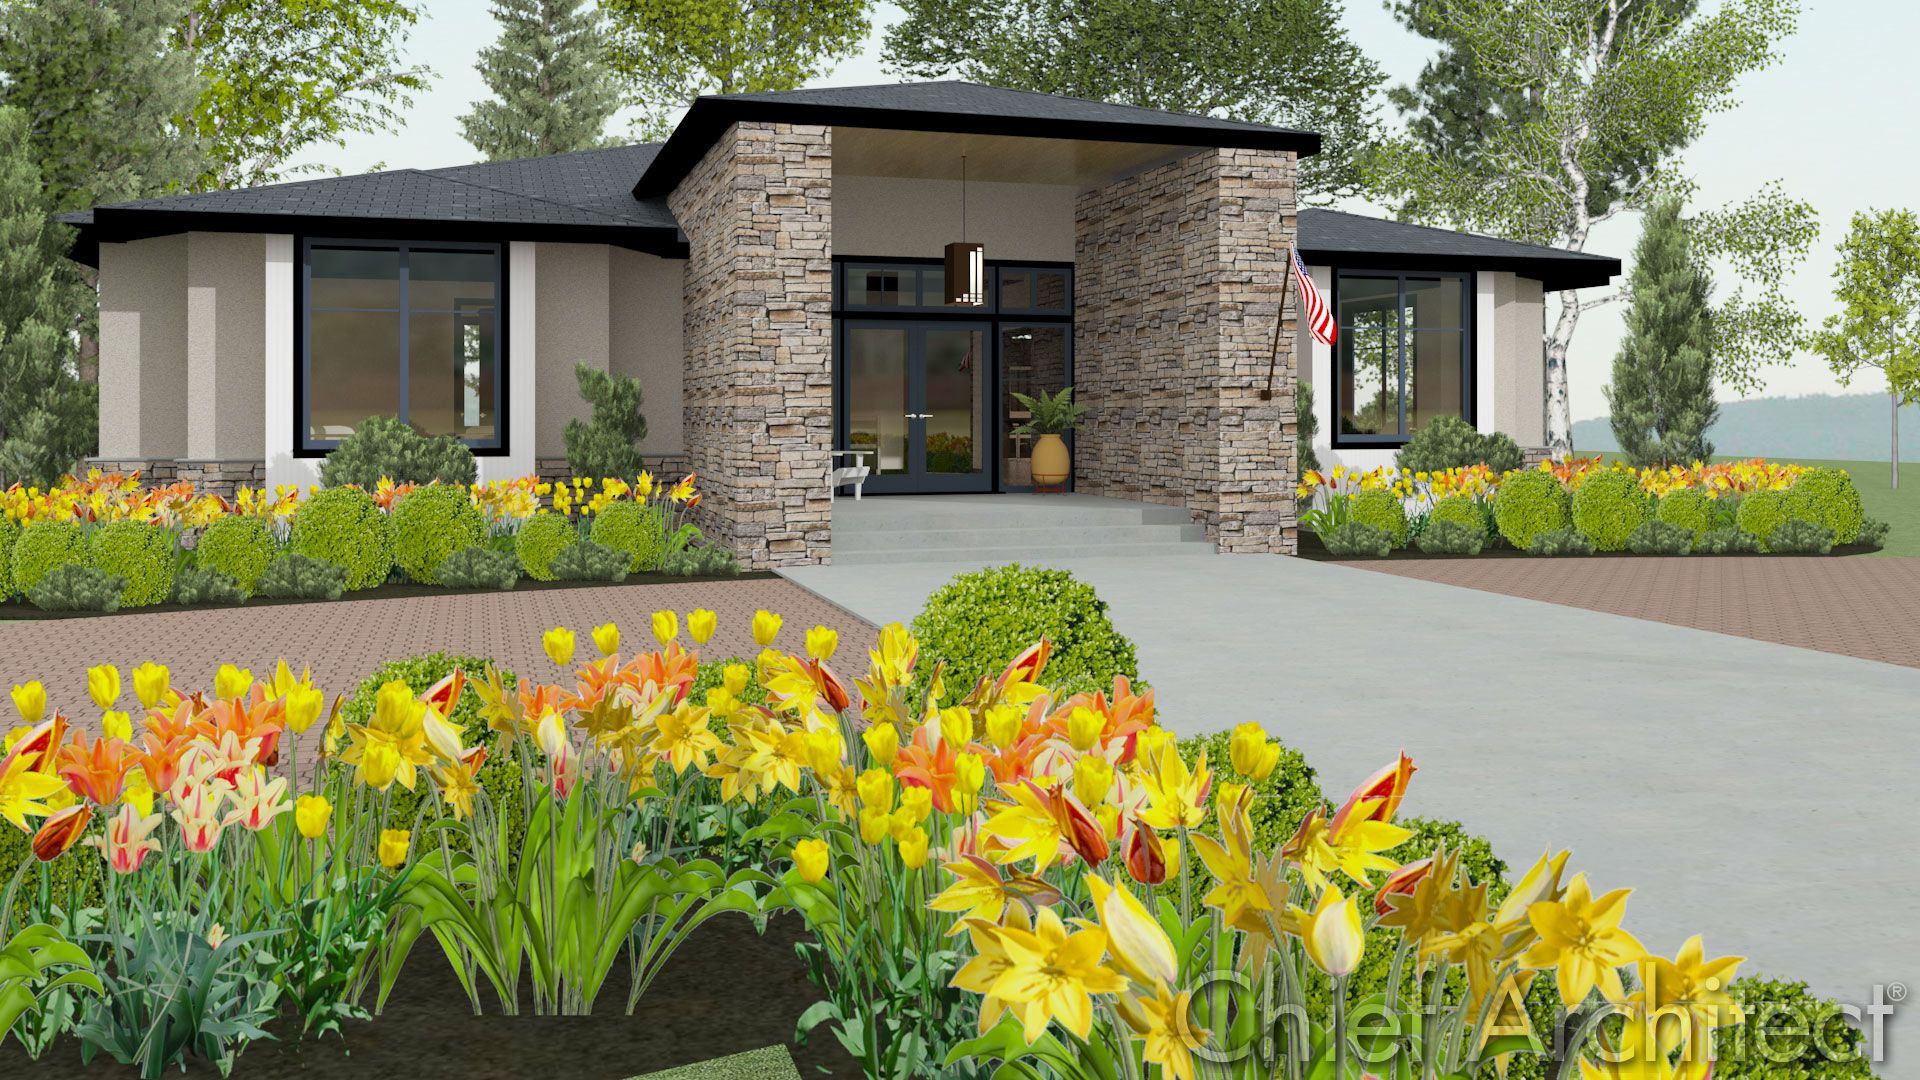 Garage Apartment House Plans Chief Architect Home Design Software Samples Gallery